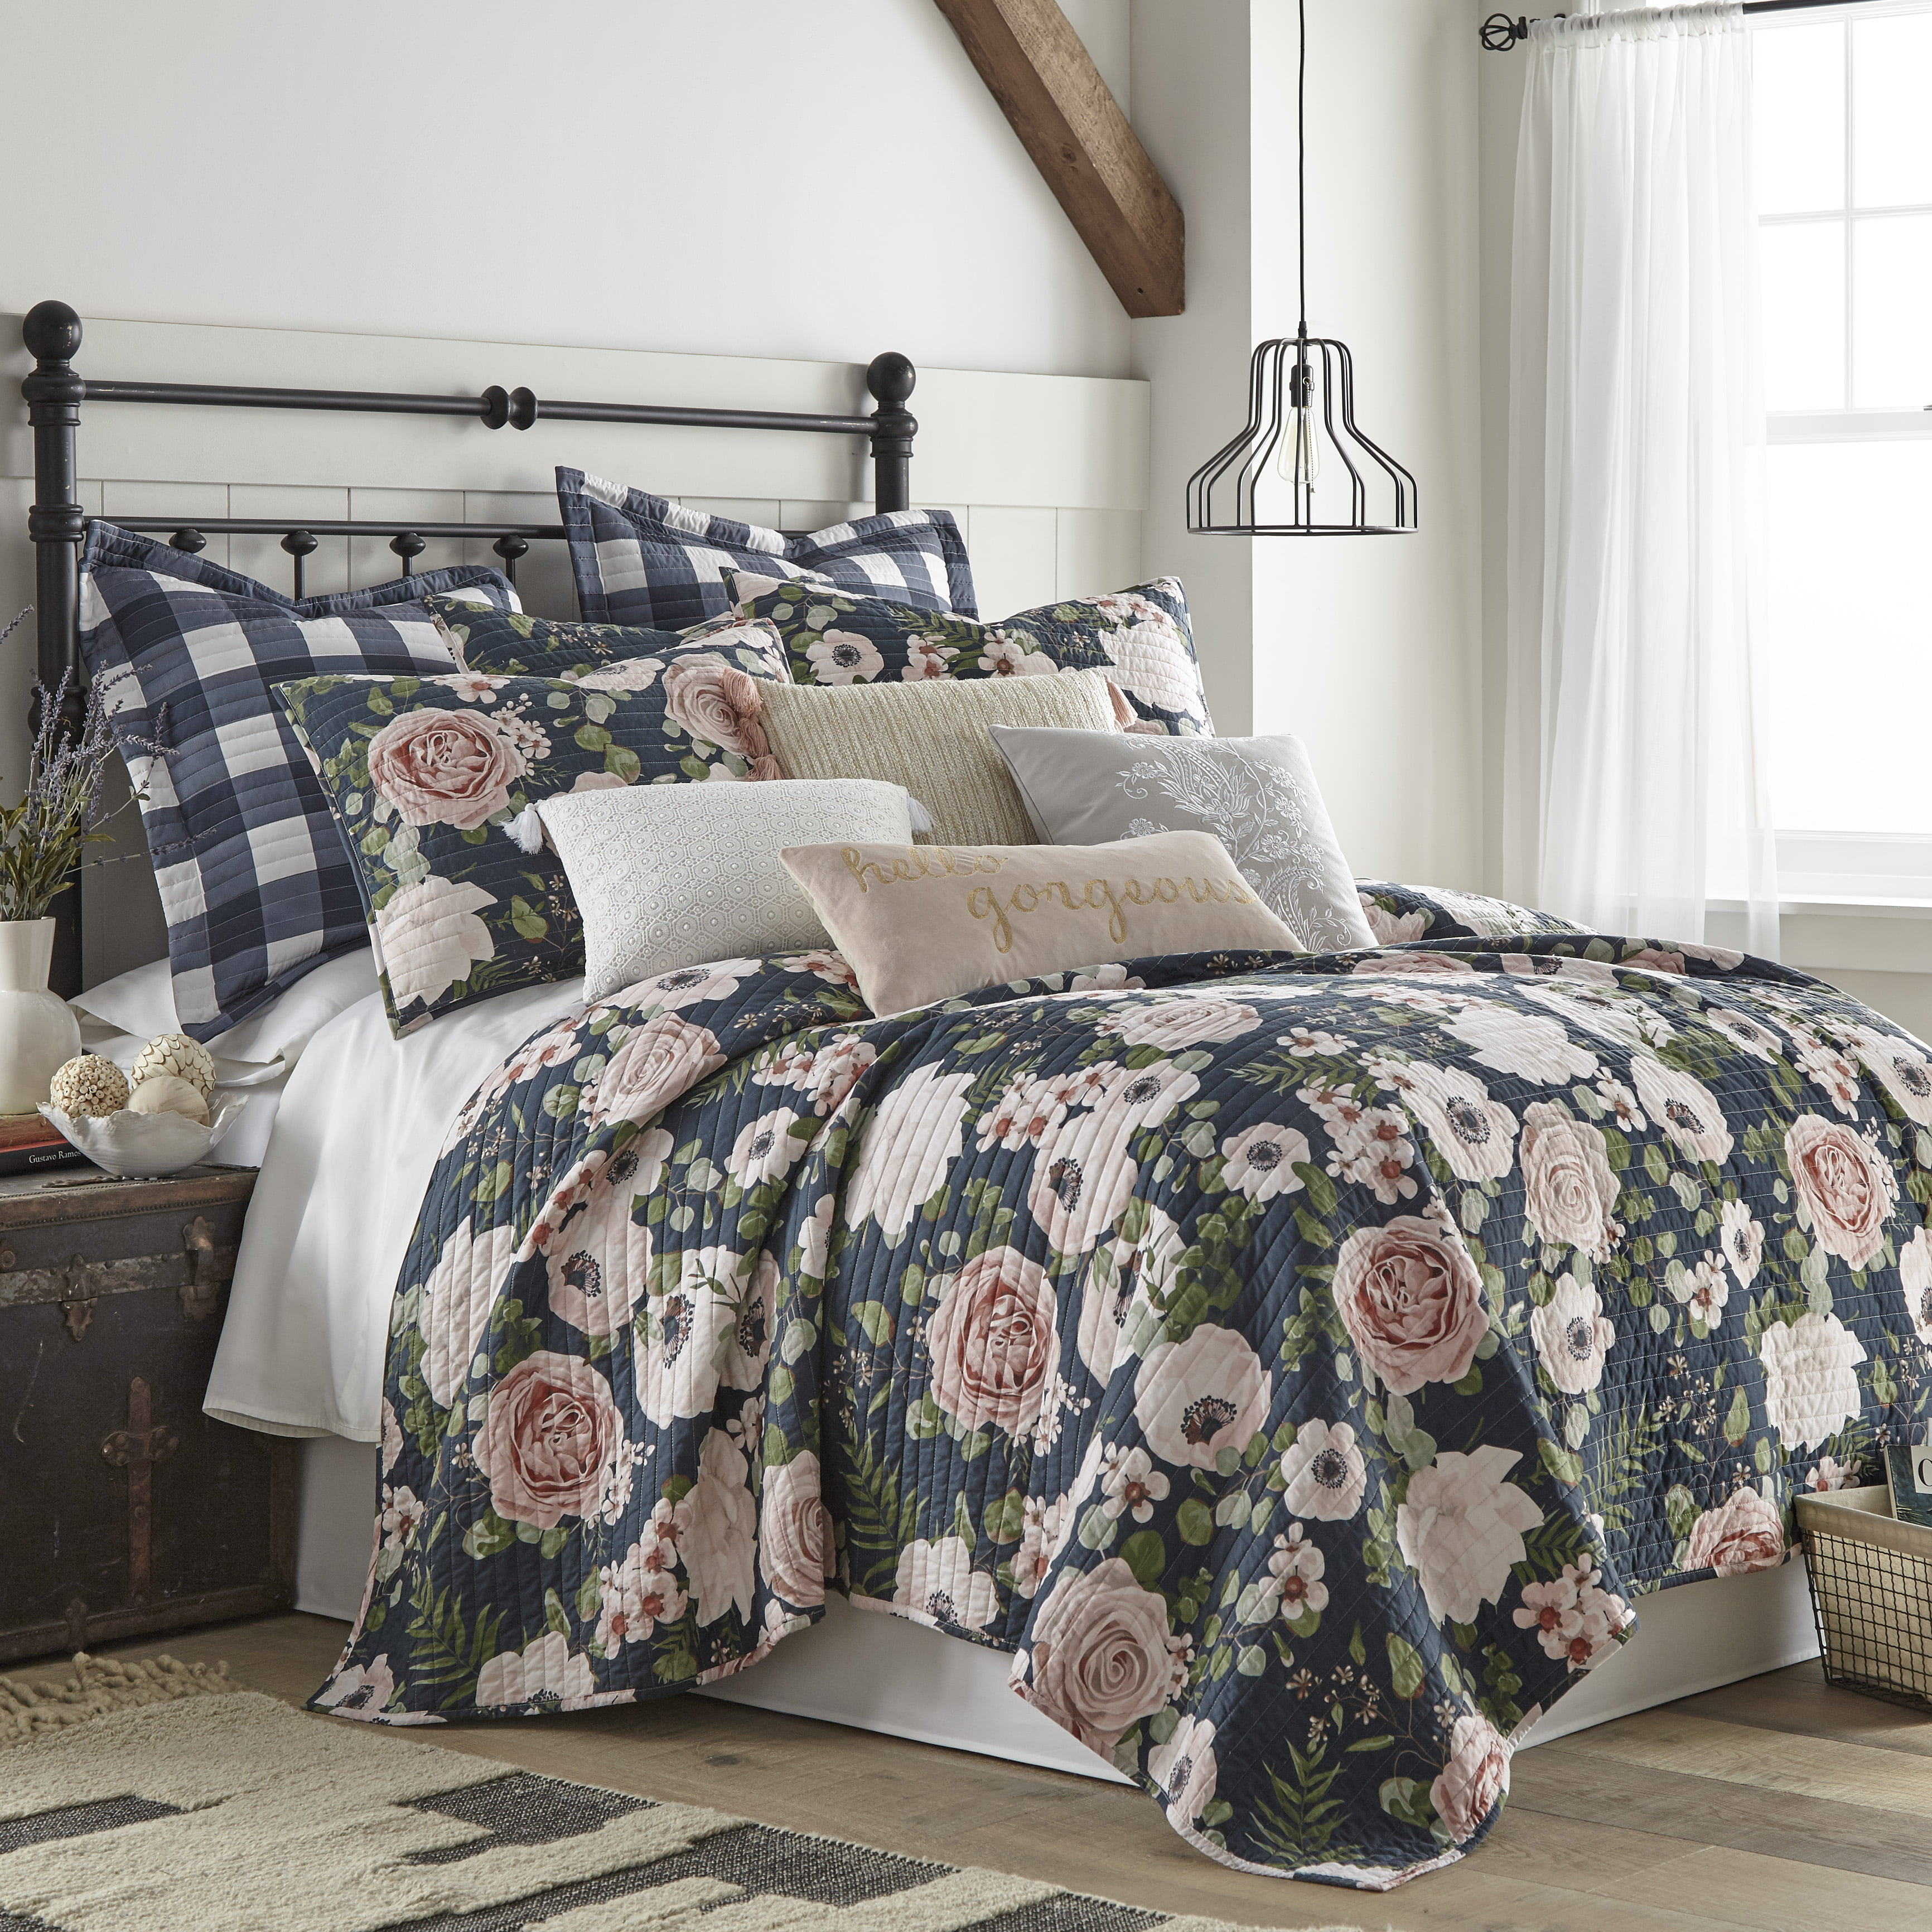 Levtex Home Fiori Quilt Set Full Queen Quilt 88x92in Two Standard Pillow Shams 26x20in Floral Charcoal Coral Pink Green Cream Reversible Cotton Fabric Walmart Com Walmart Com